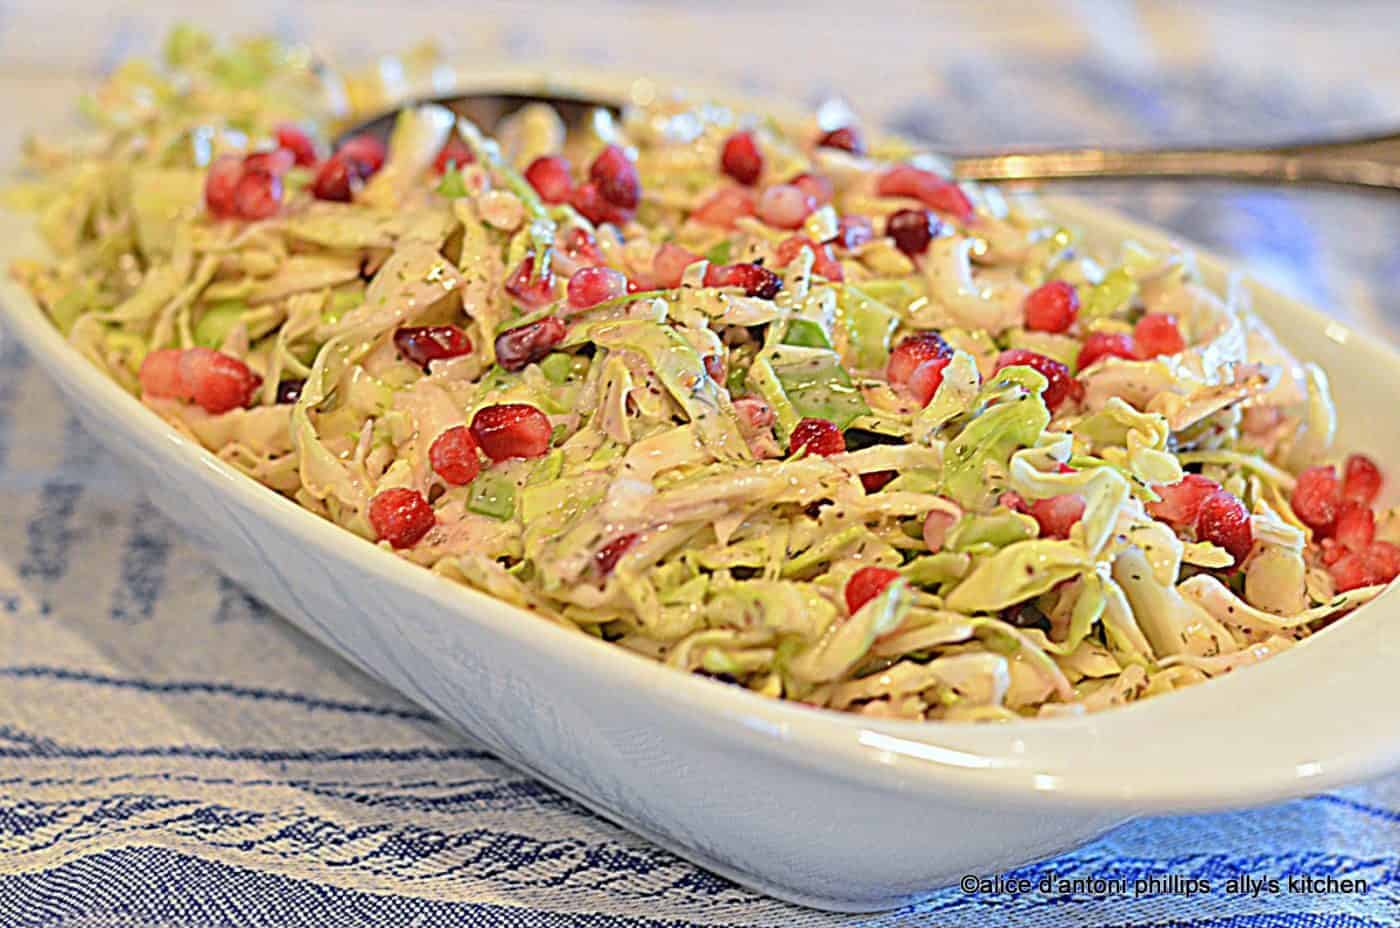 Pomegranate Coleslaw